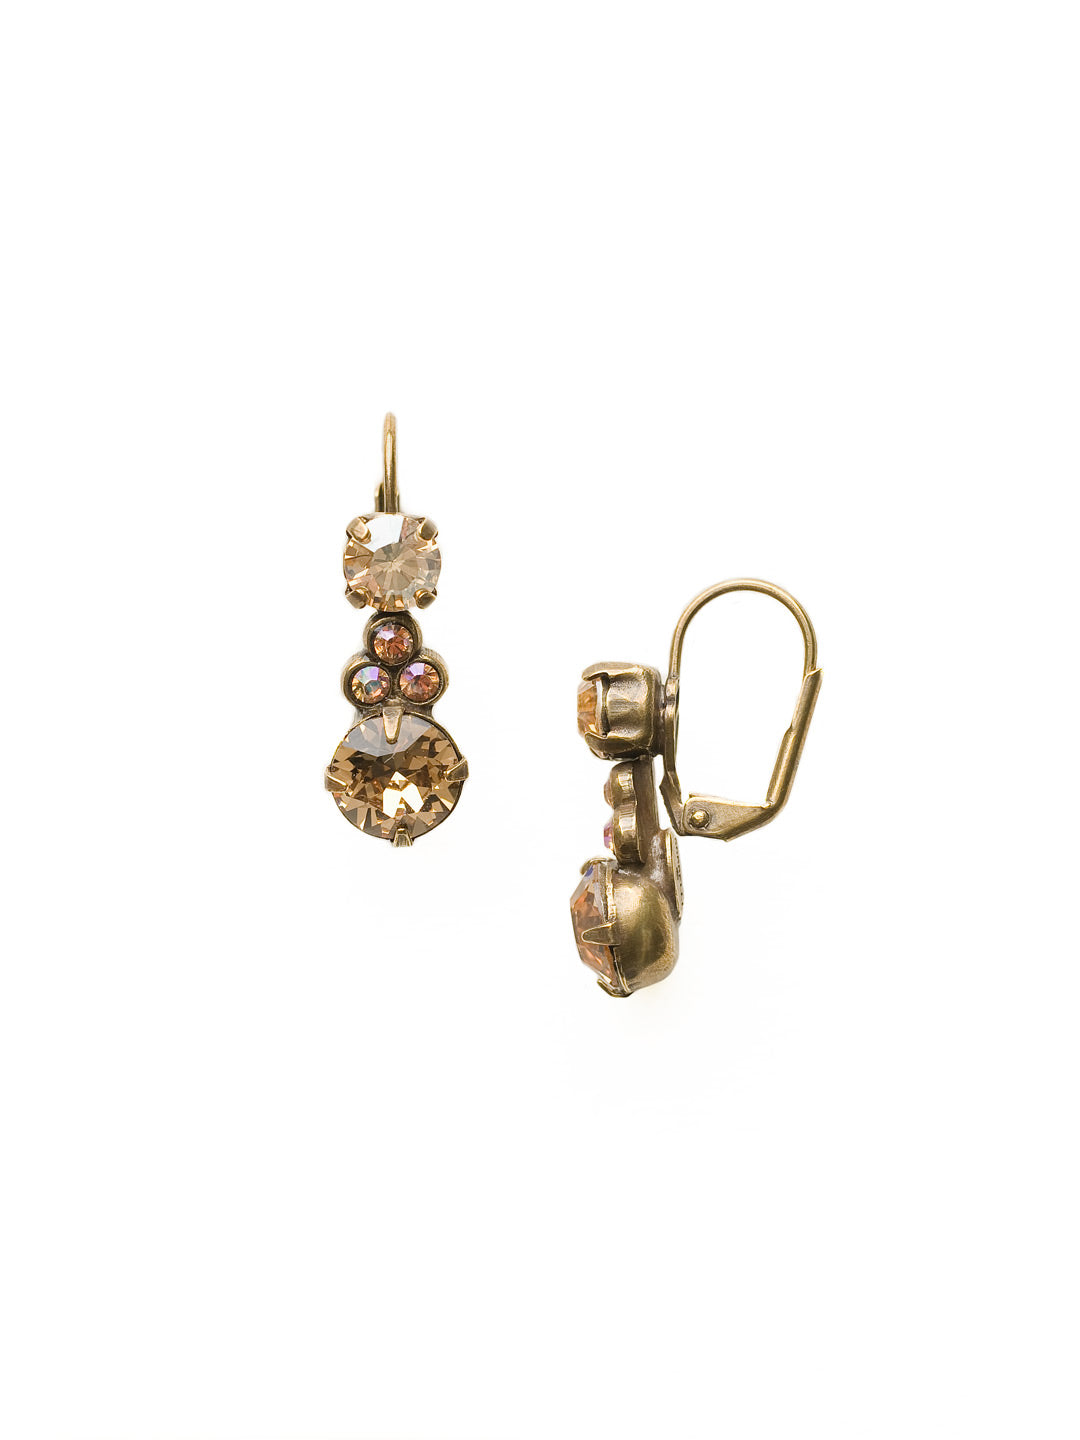 Clustered Circular Crystal Drop Earring - ECJ14AGNT